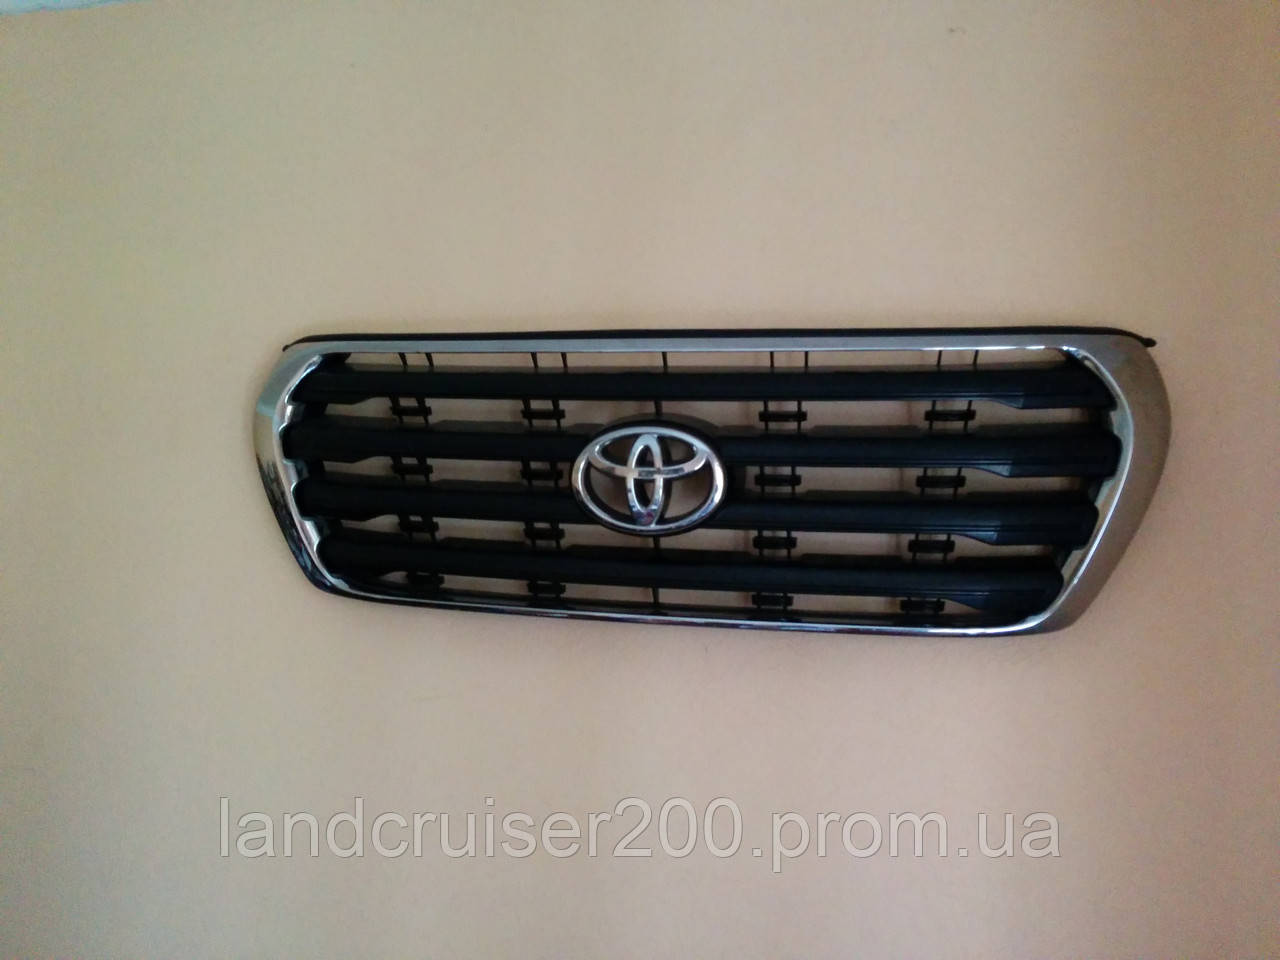 Решётка радиатора Toyota Land Cruiser 200